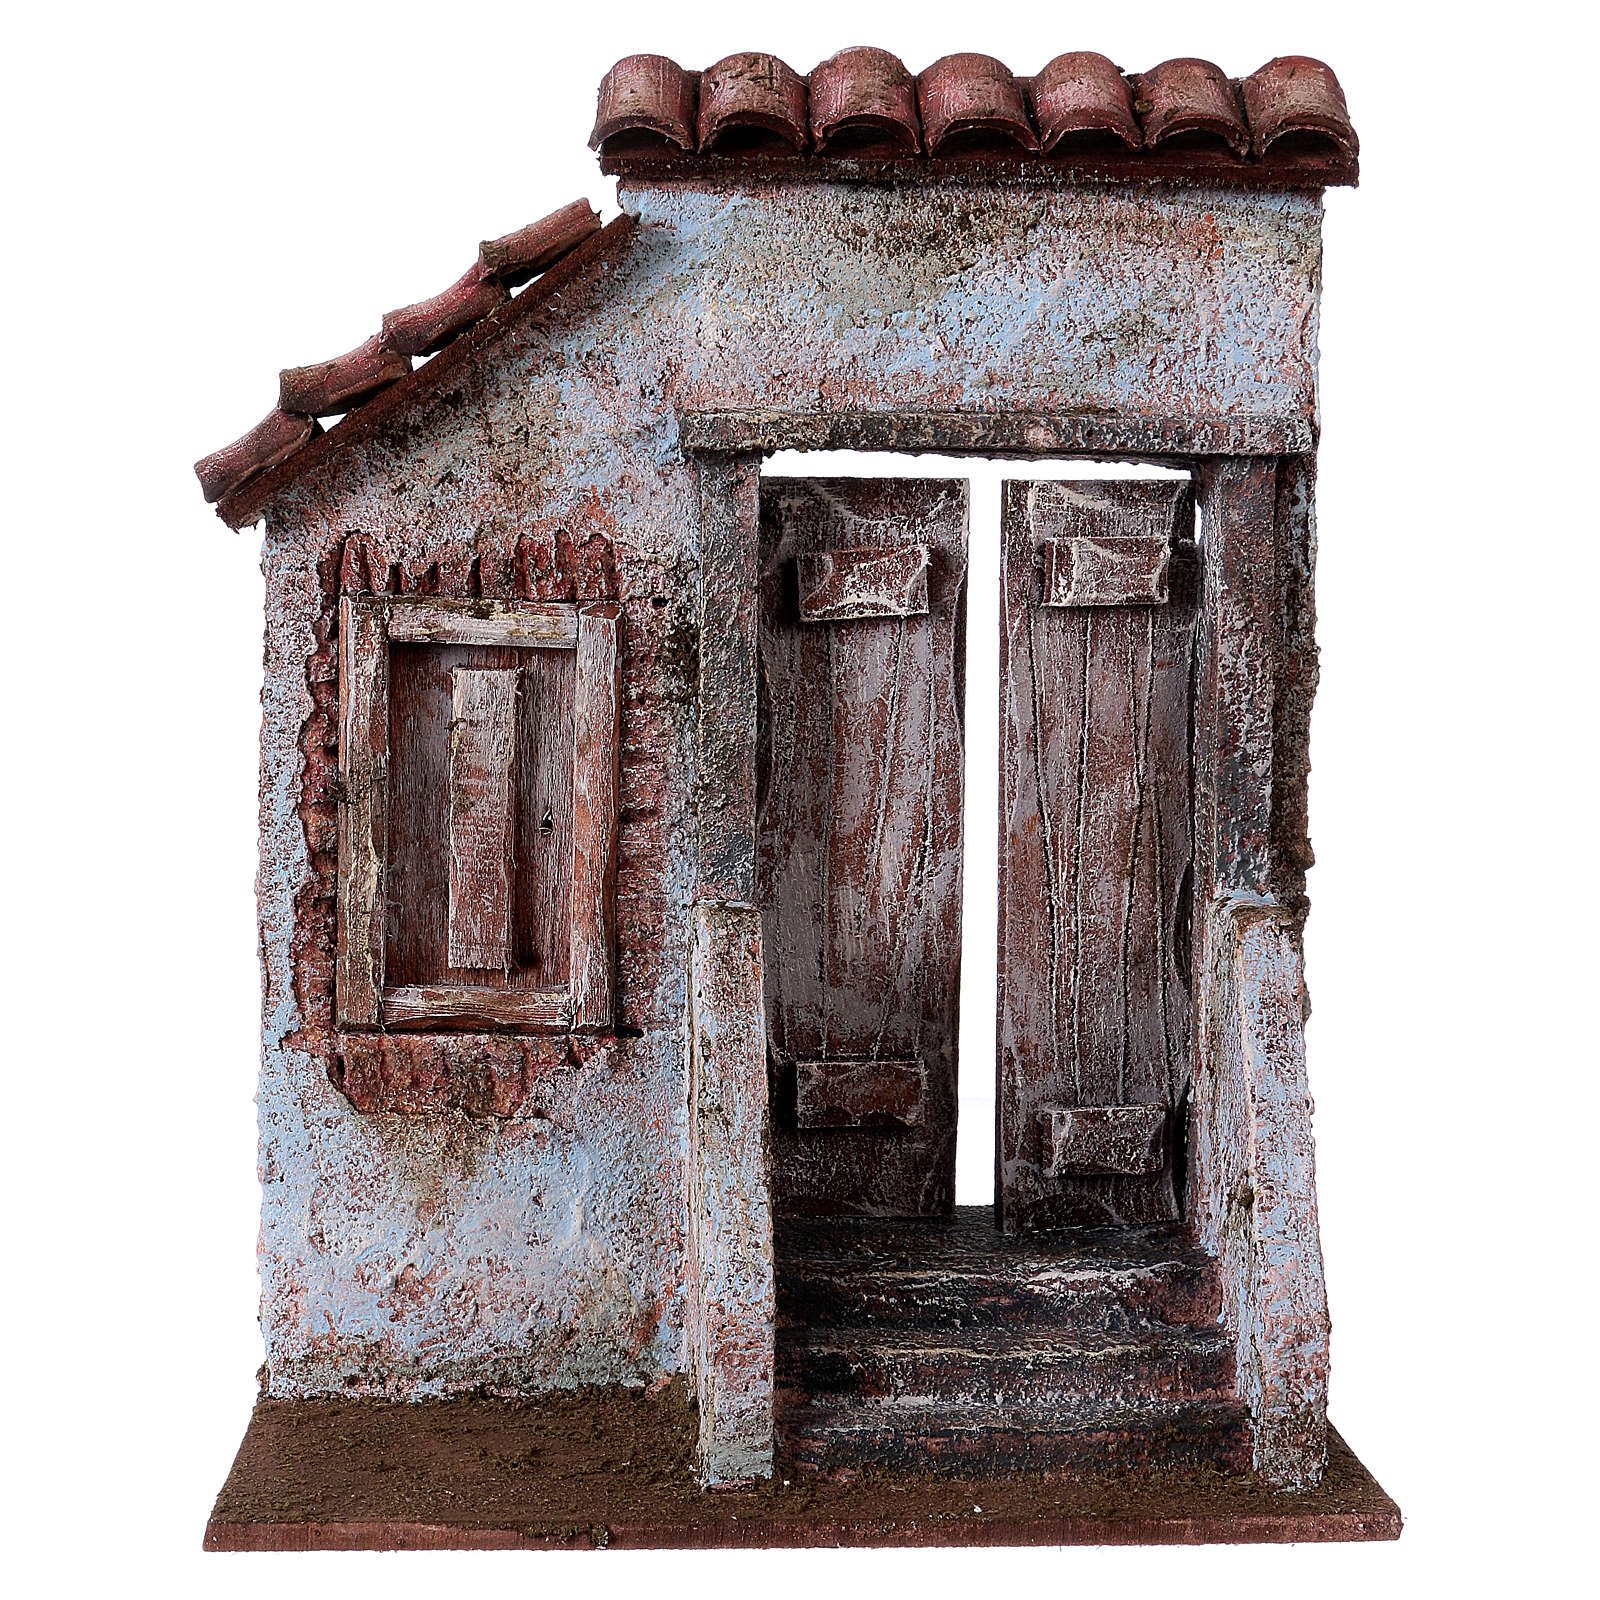 Facade with staircase and central door for 12 cm figurines 4